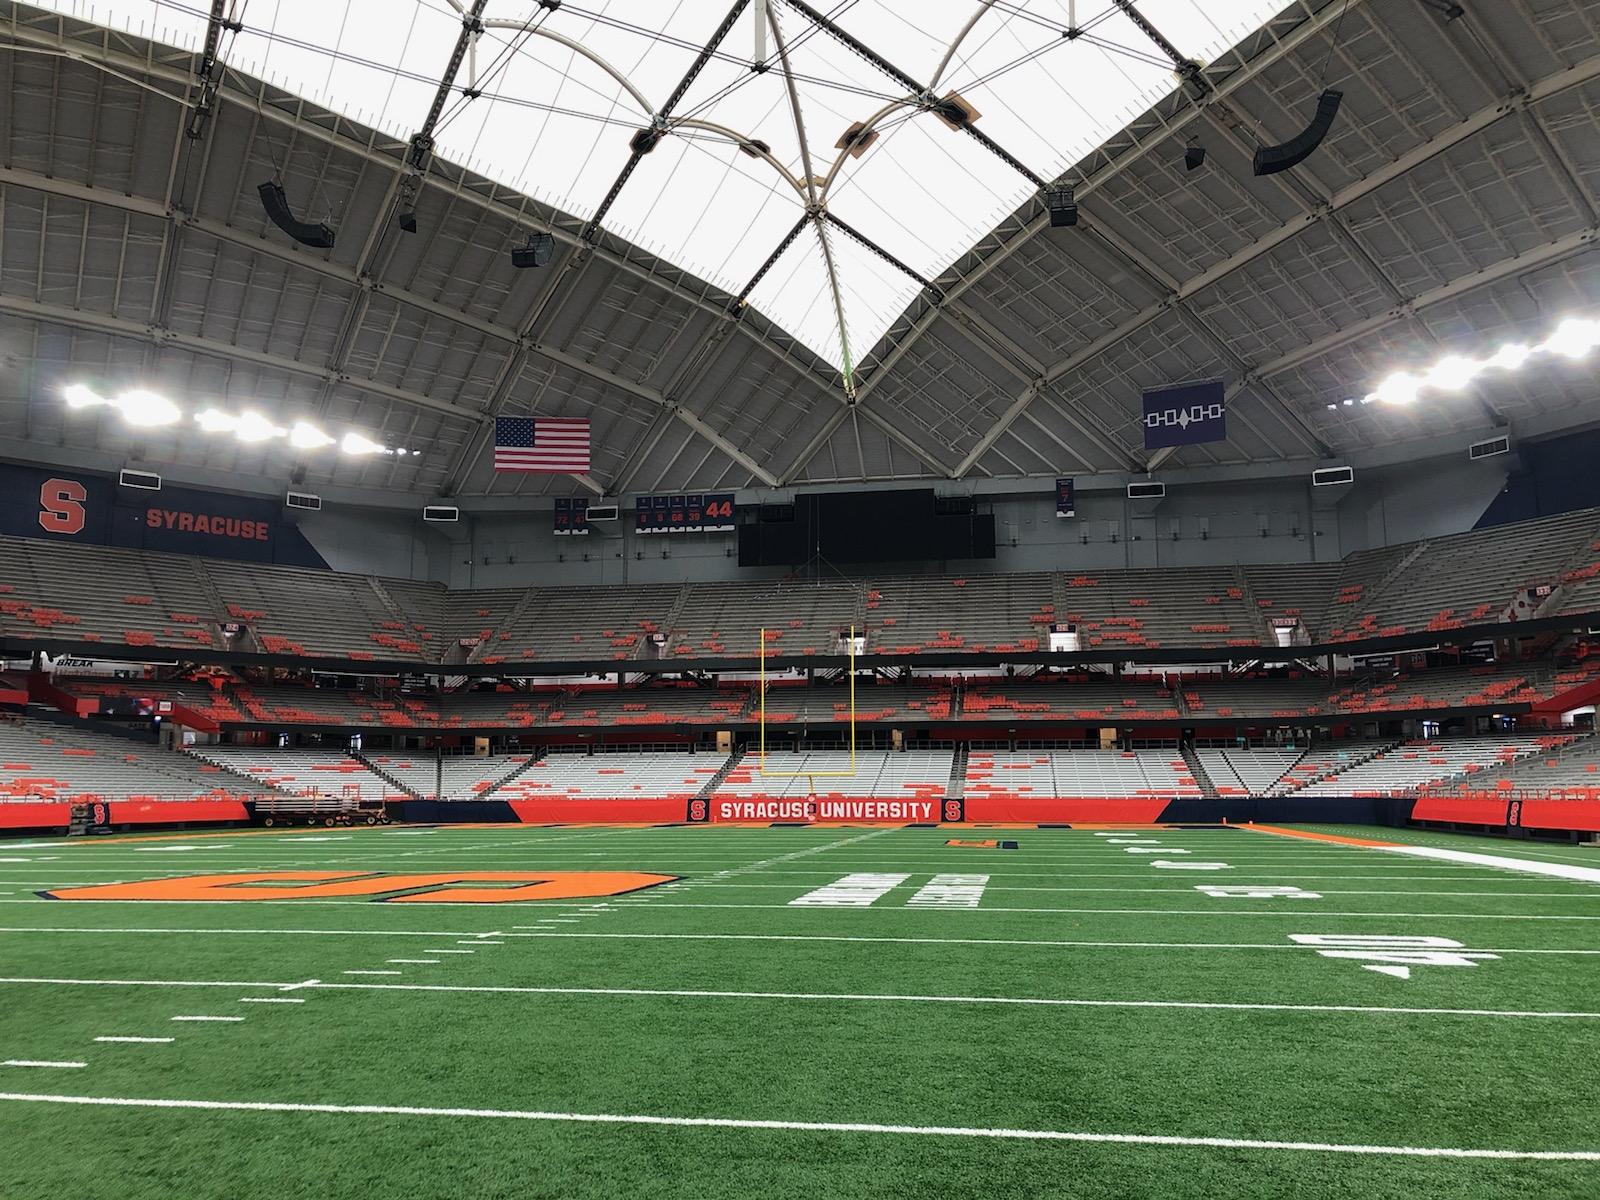 The Dome at Syracuse University